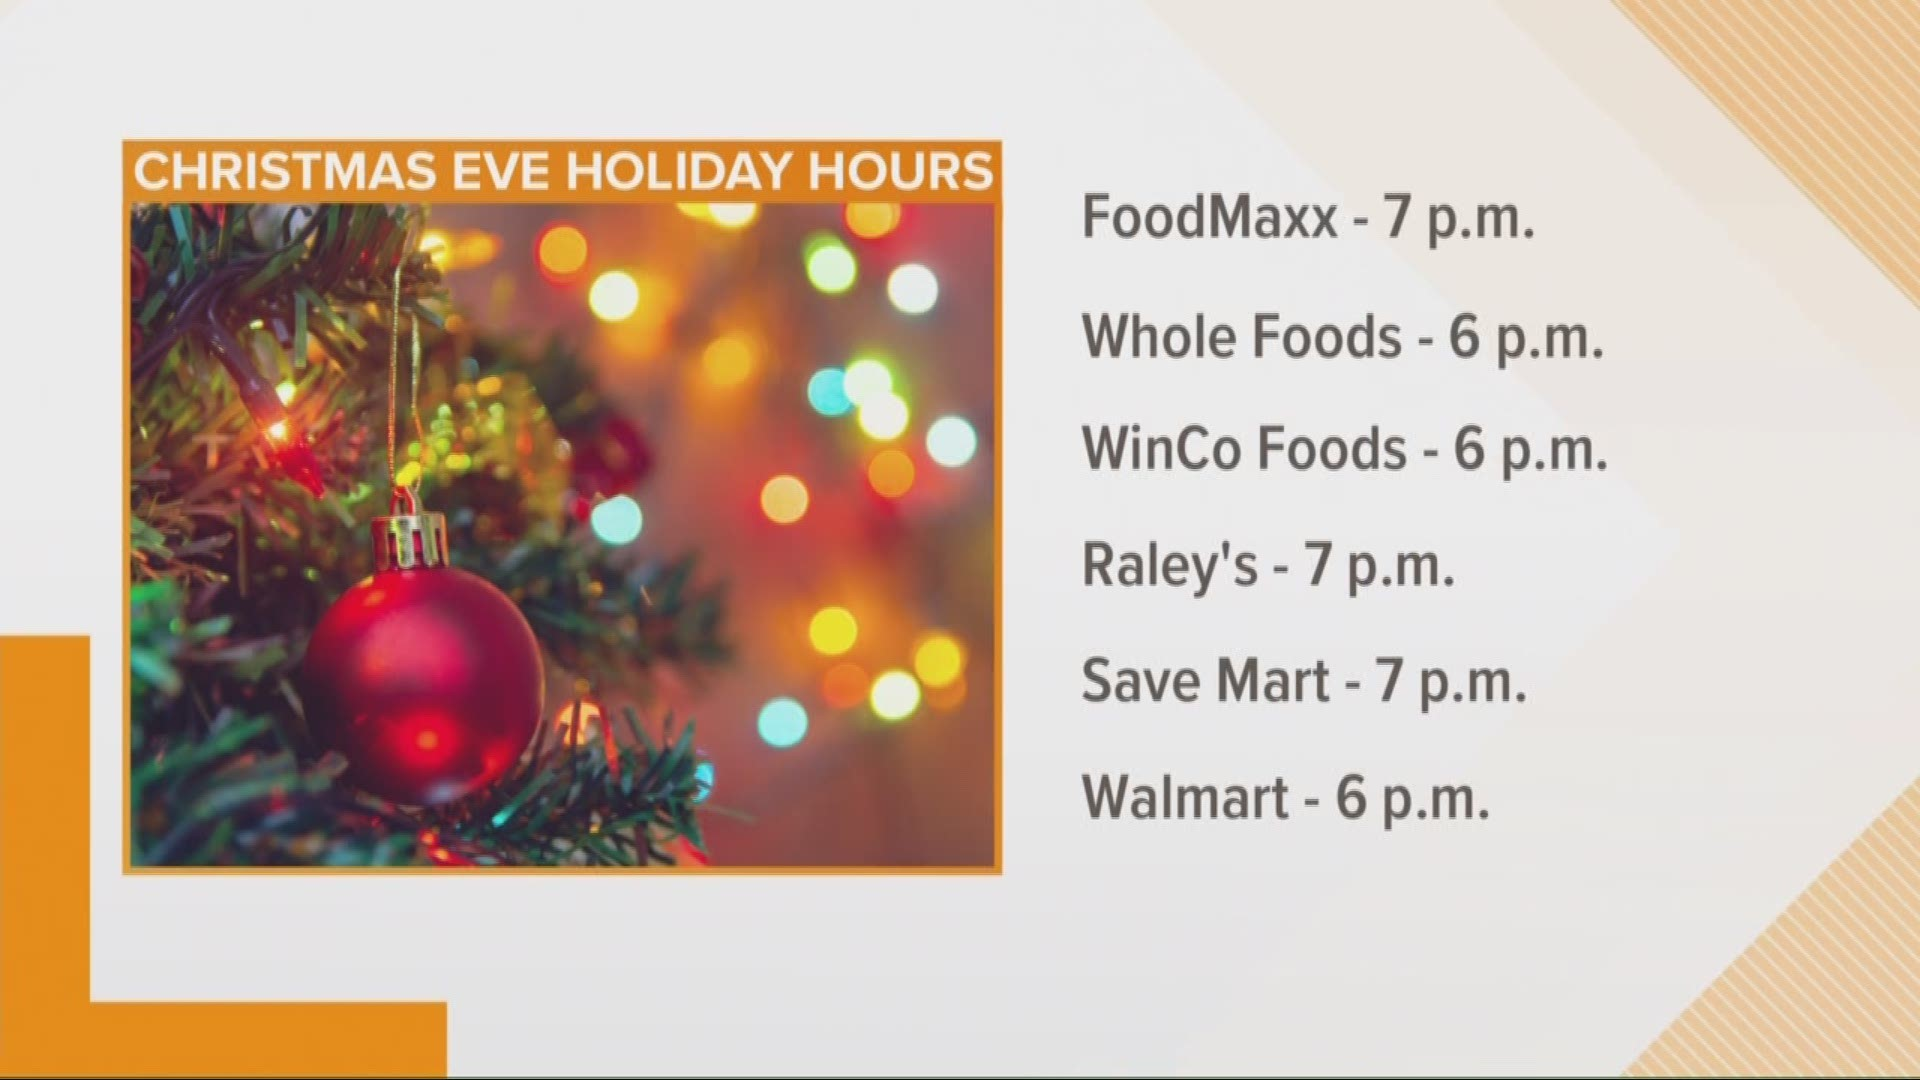 Holiday hours for grocery stores